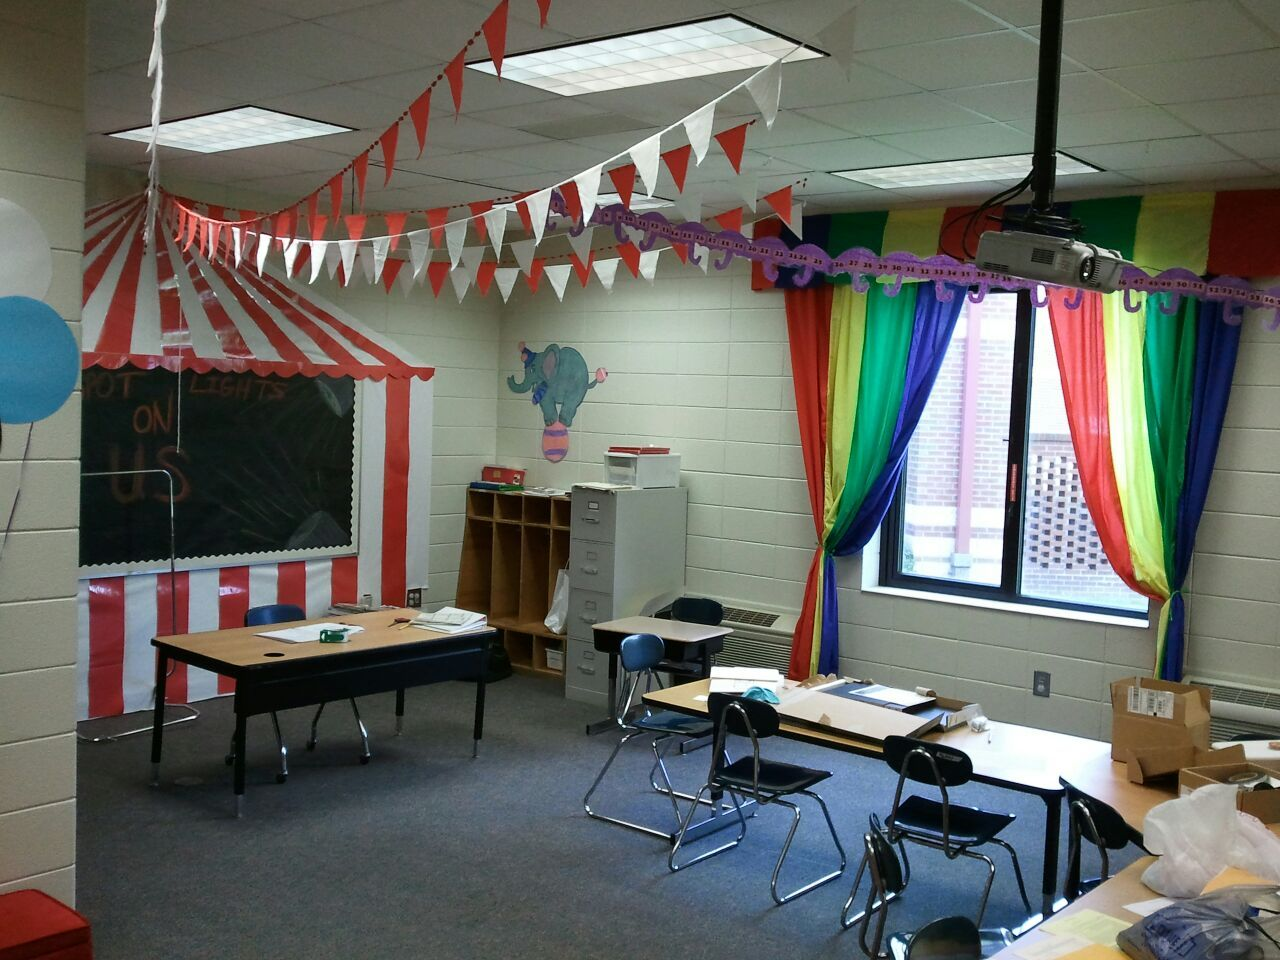 Circus Classroom Decoration Ideas : Circus theme classroom decor and ideas pinterest